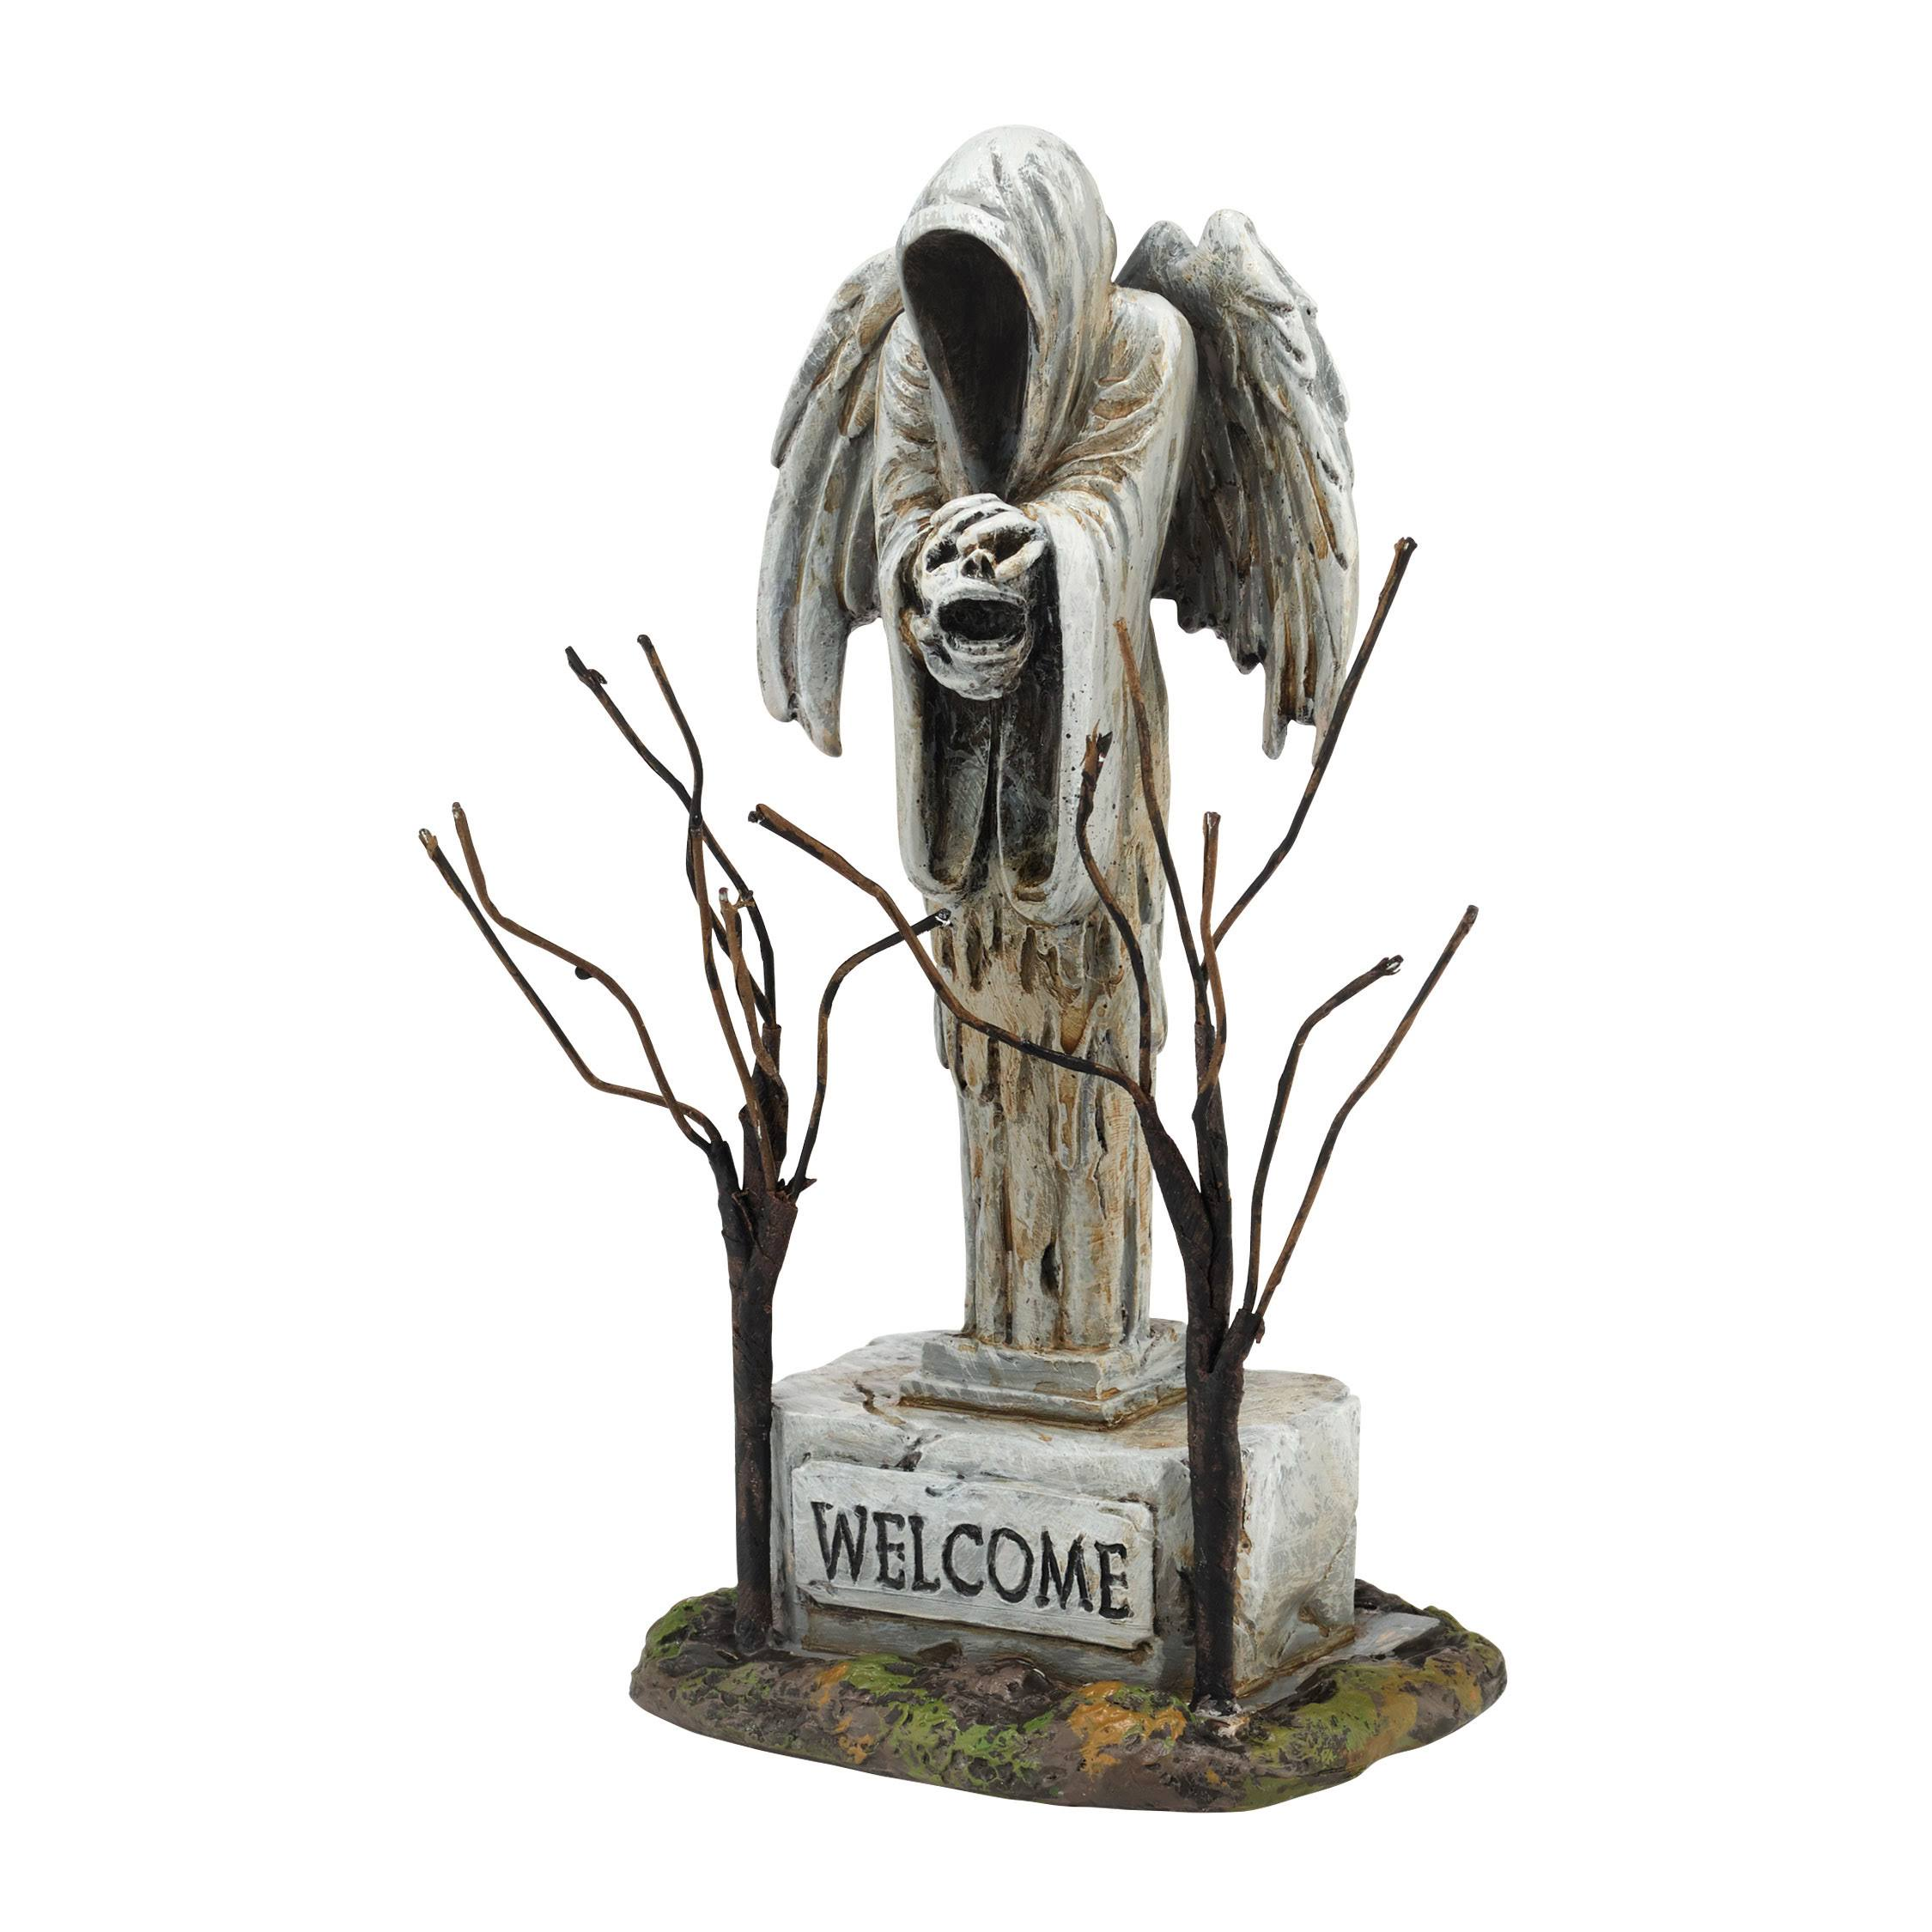 Dept 56 Halloween Village 4054256 Angel of Death